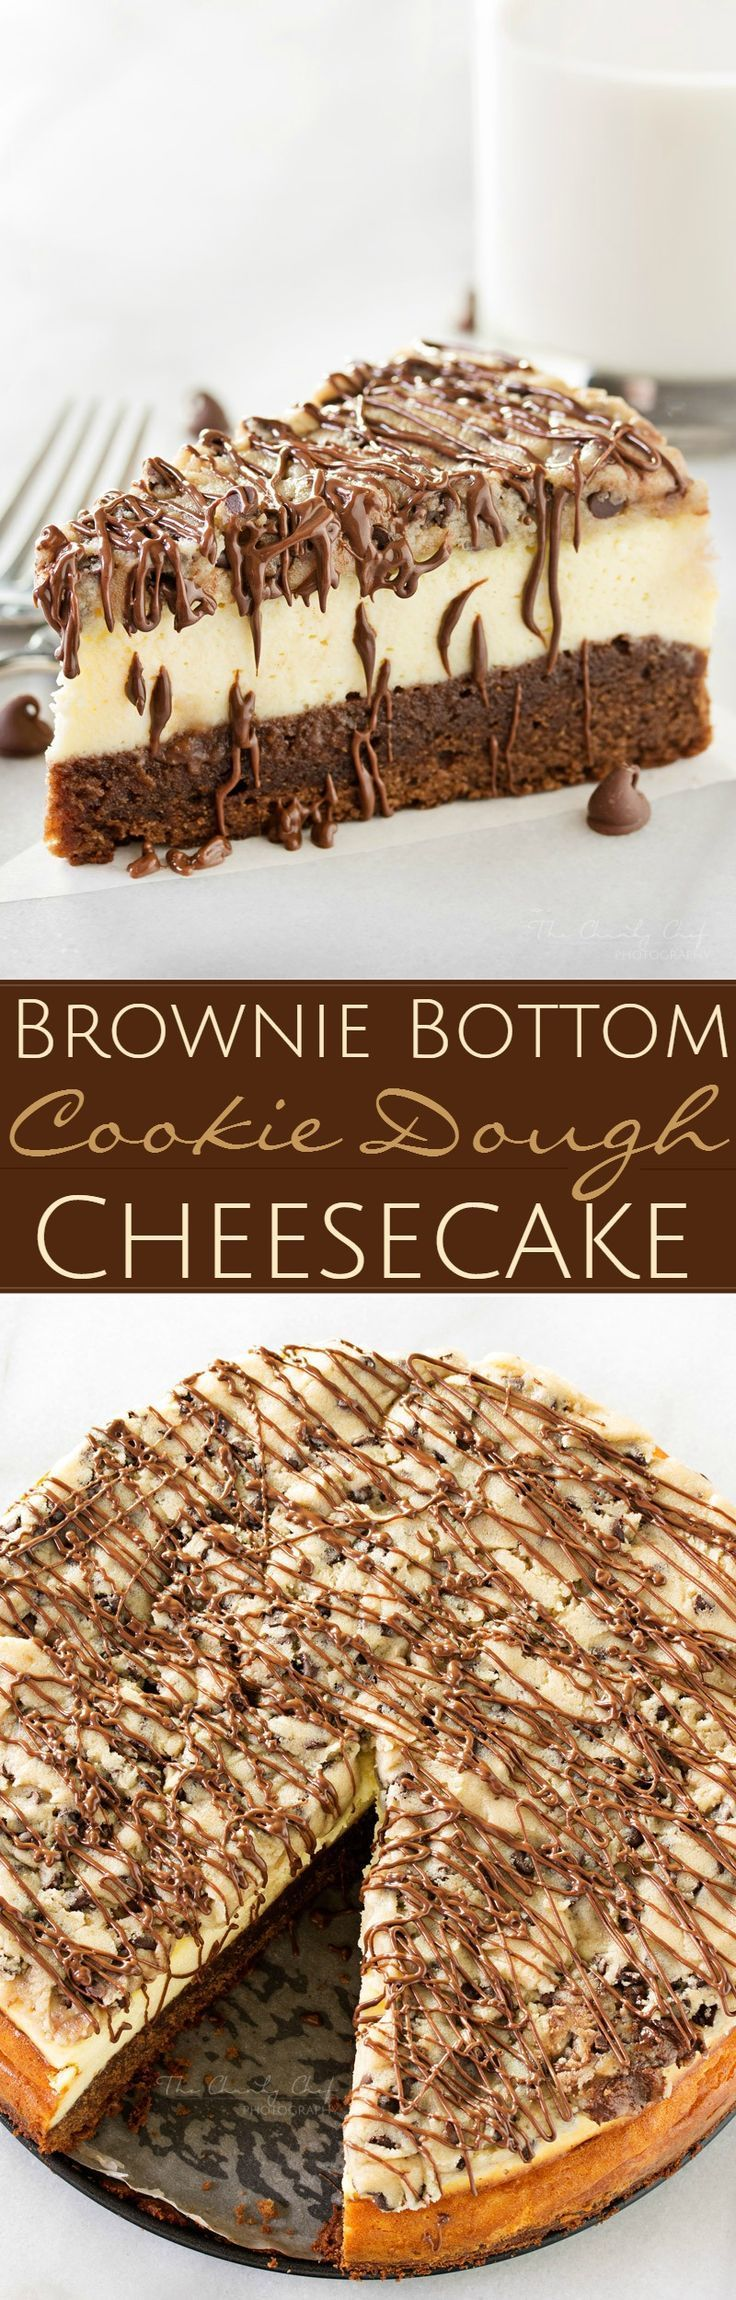 Brownie Bottom Cookie Dough Cheesecake - This impressive, yet super easy, brownie bottom cookie dough cheesecake looks as fancy as any dessert you've had from a restaurant! The ULTIMATE cheesecake for the ULTIMATE dessert lover!